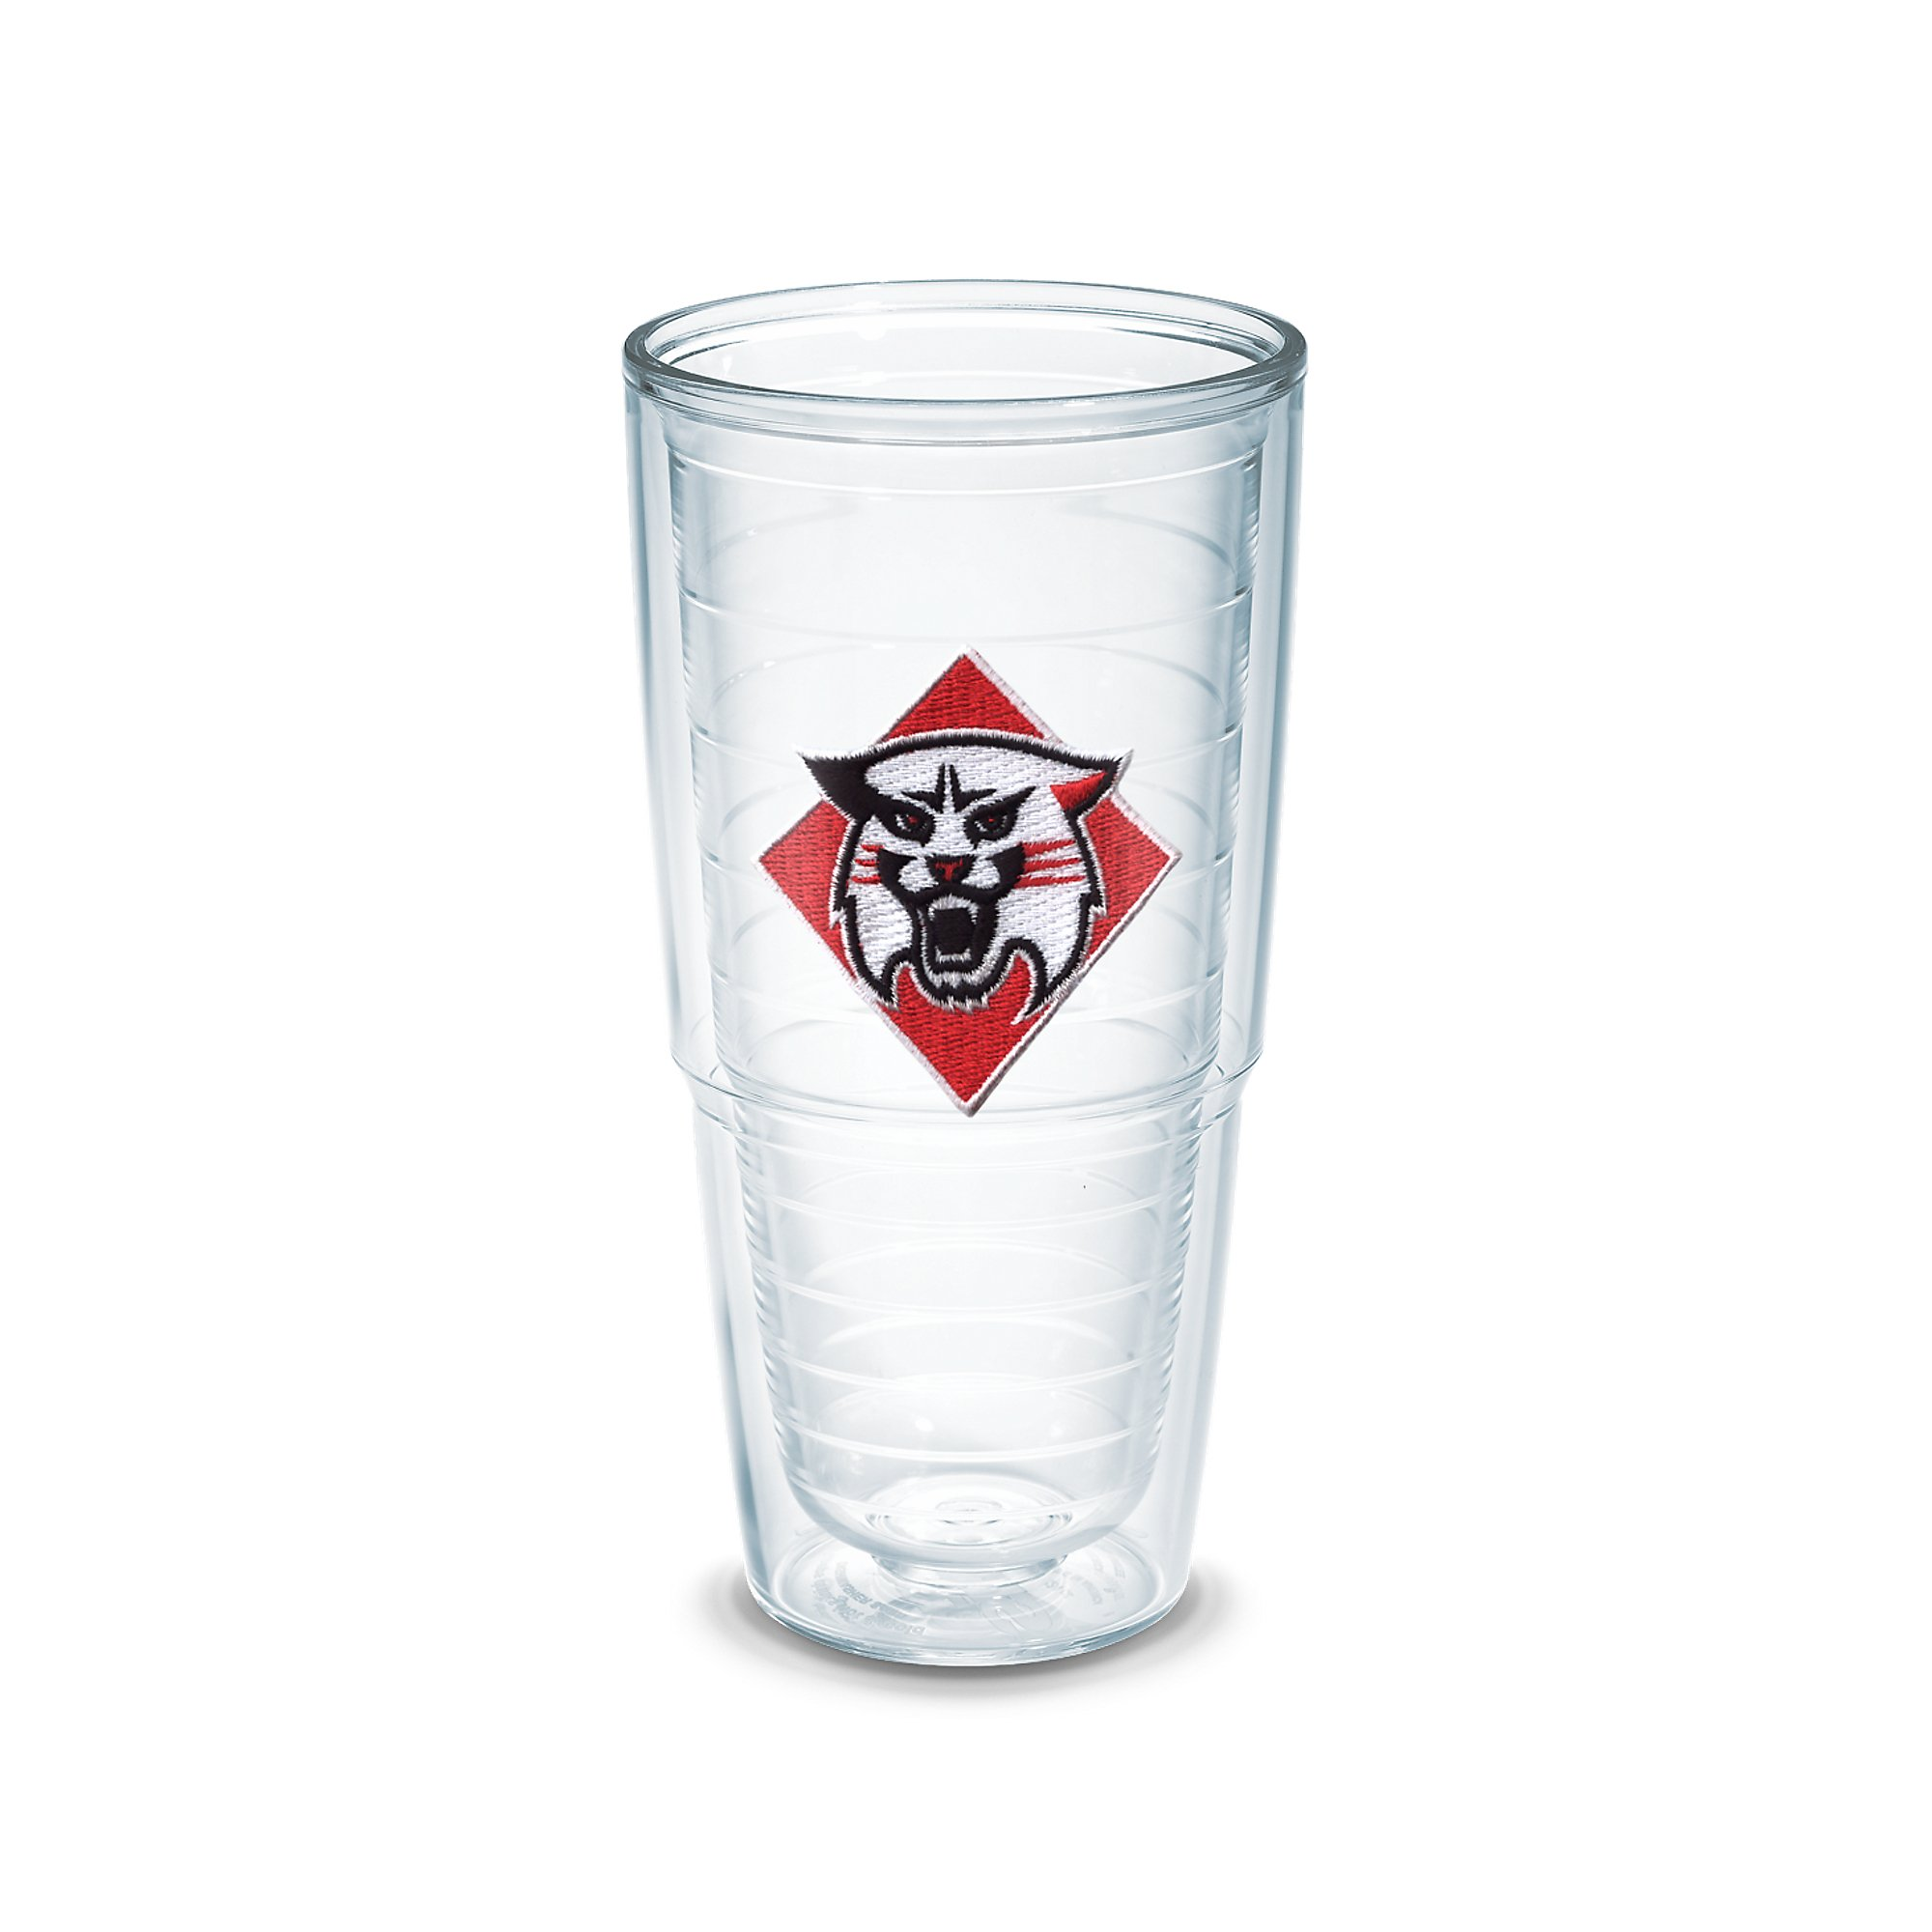 Tervis 1049931 Davidson College Emblem Individually Boxed Tumbler, 24 oz, Clear